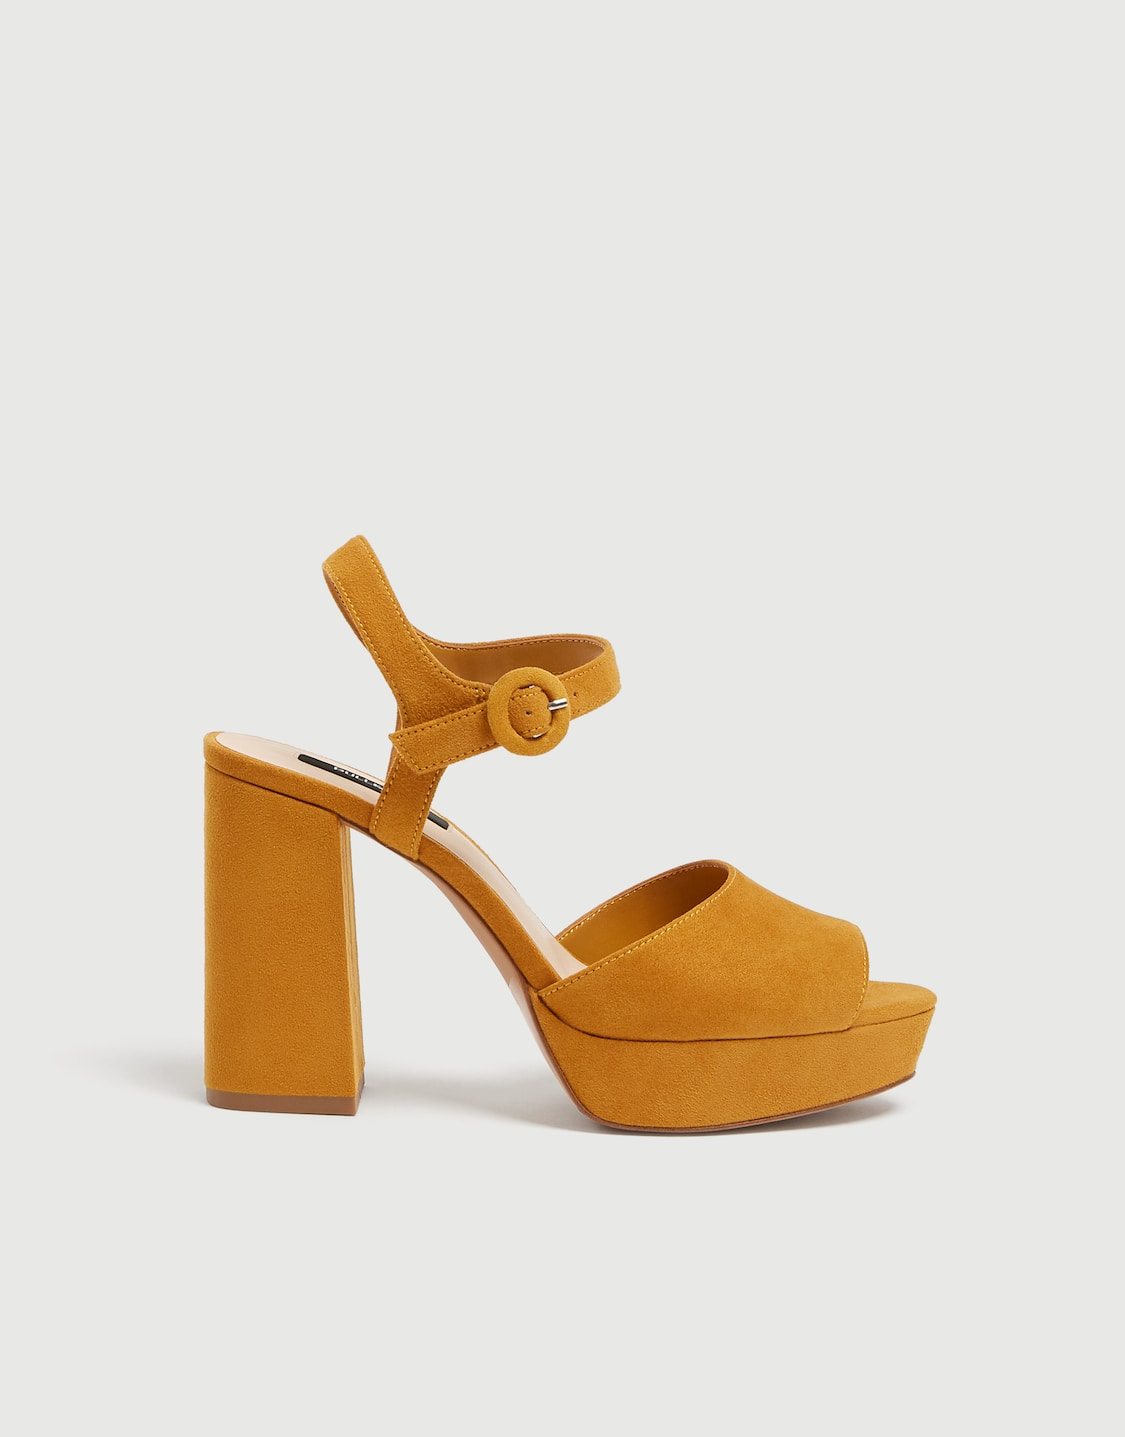 176191f66a0 Mustard yellow high-heel sandals